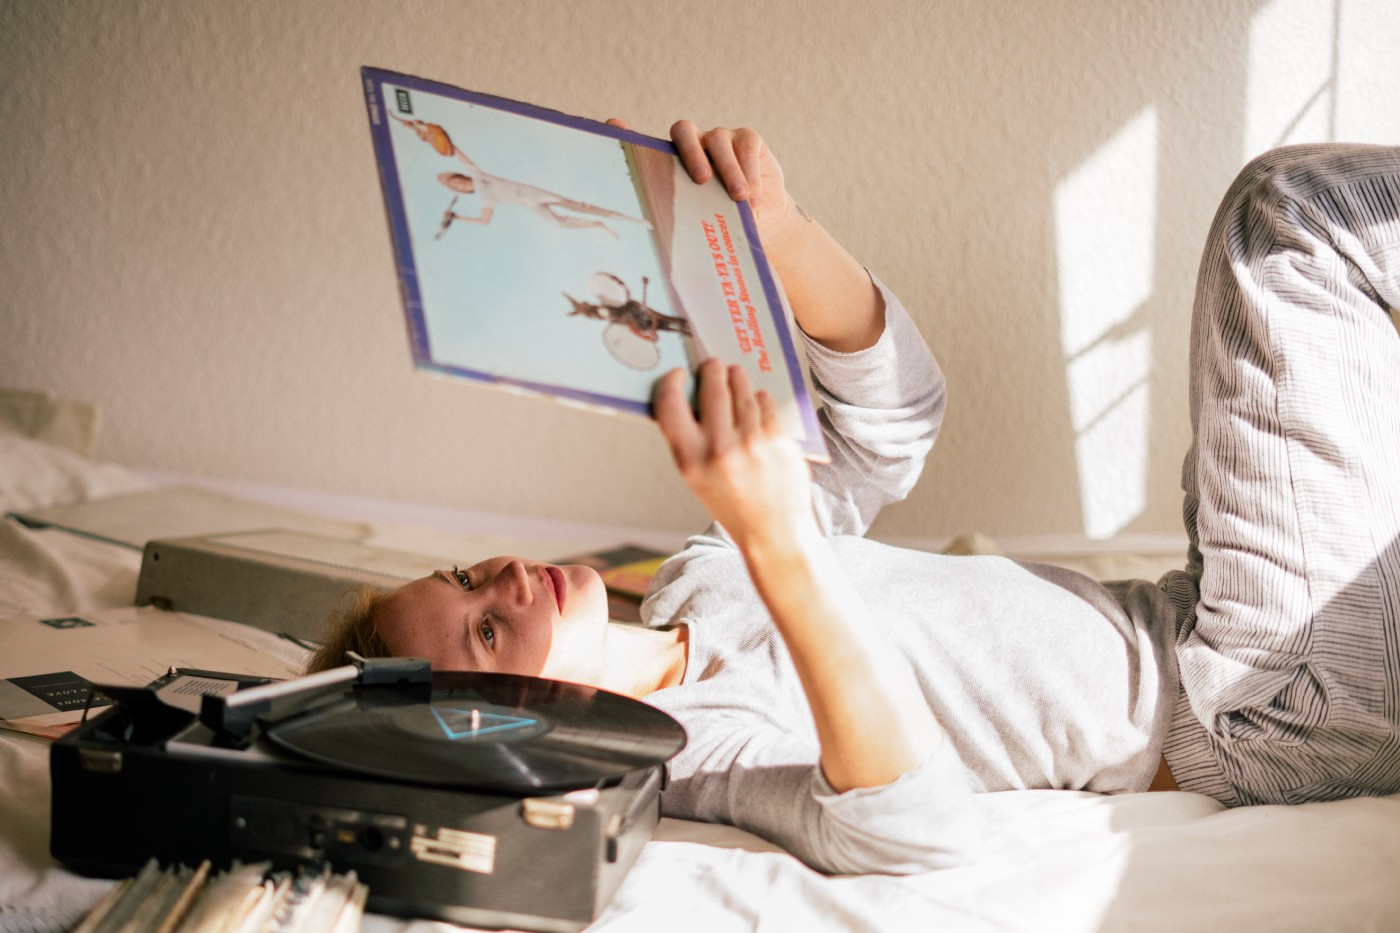 A woman reclines on a bed, listening to vinyls on a record player as she looks at the cover of an album.